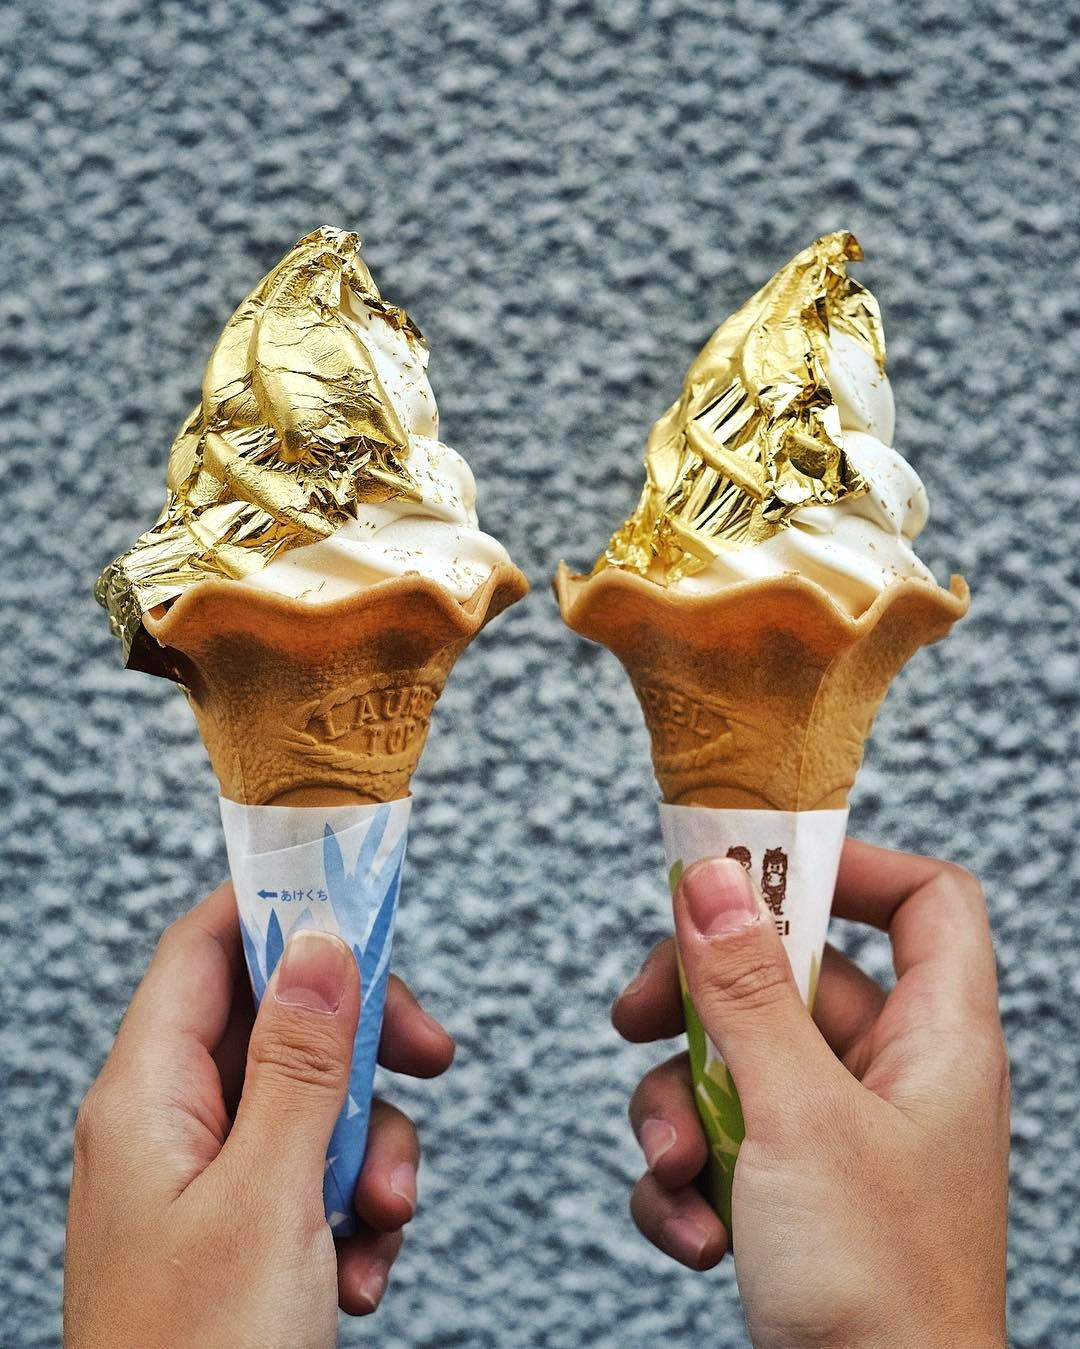 Gold leaf soft serve at Hakuichi